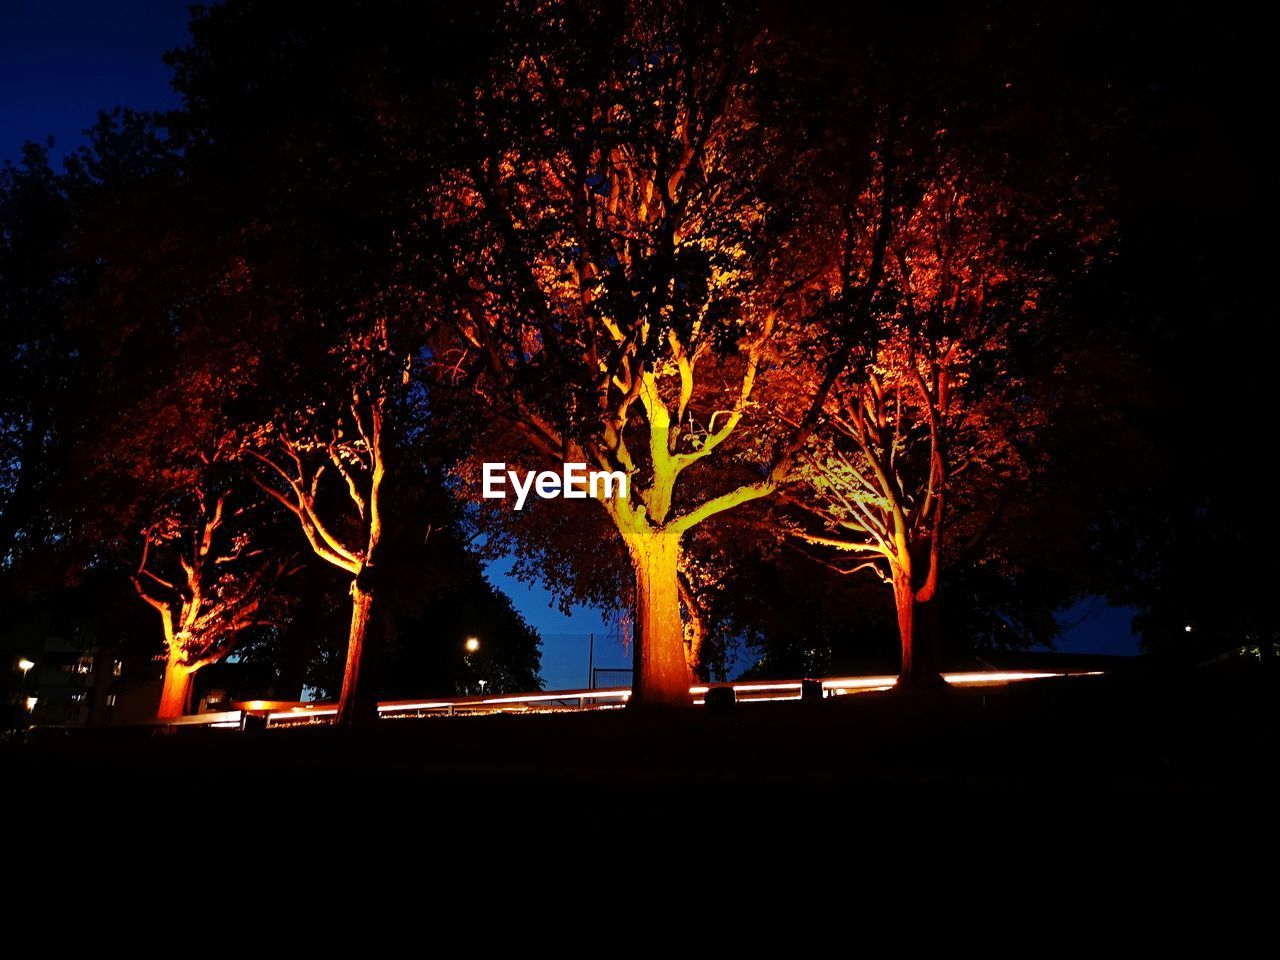 tree, plant, illuminated, night, nature, no people, growth, motion, outdoors, city, transportation, glowing, architecture, branch, orange color, long exposure, street, sky, silhouette, road